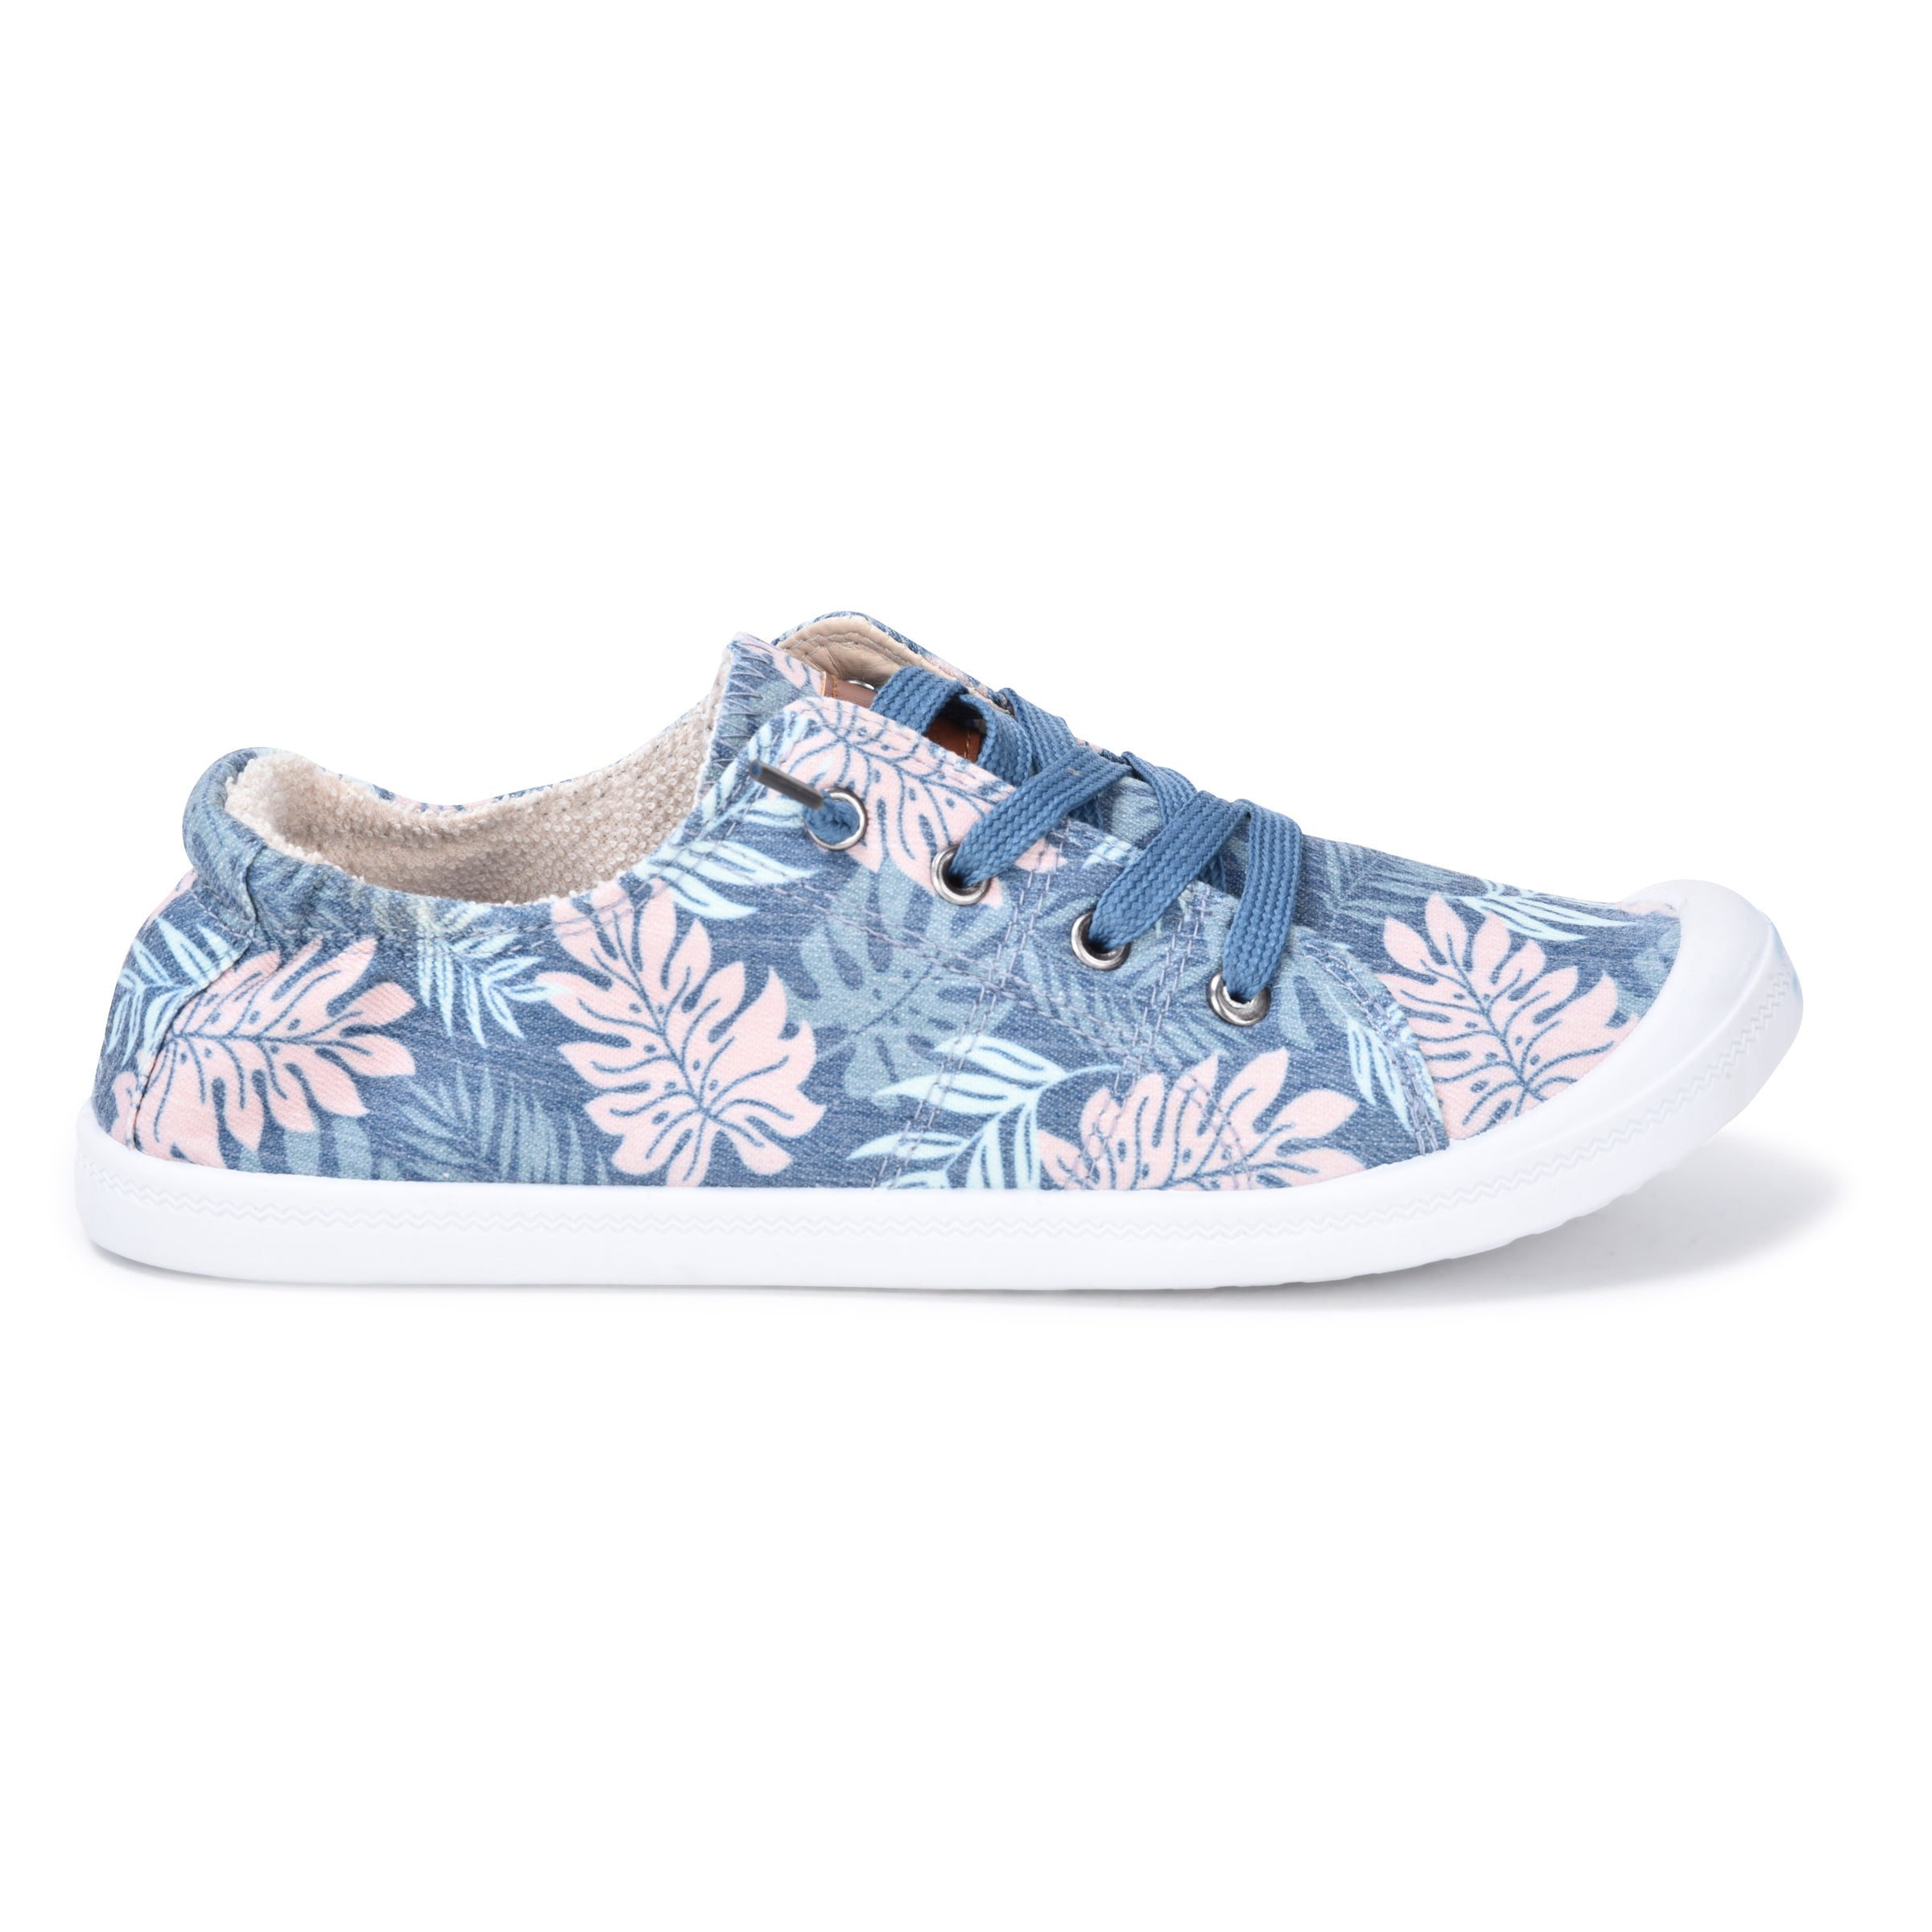 HANG OUT - BLUE FLORAL